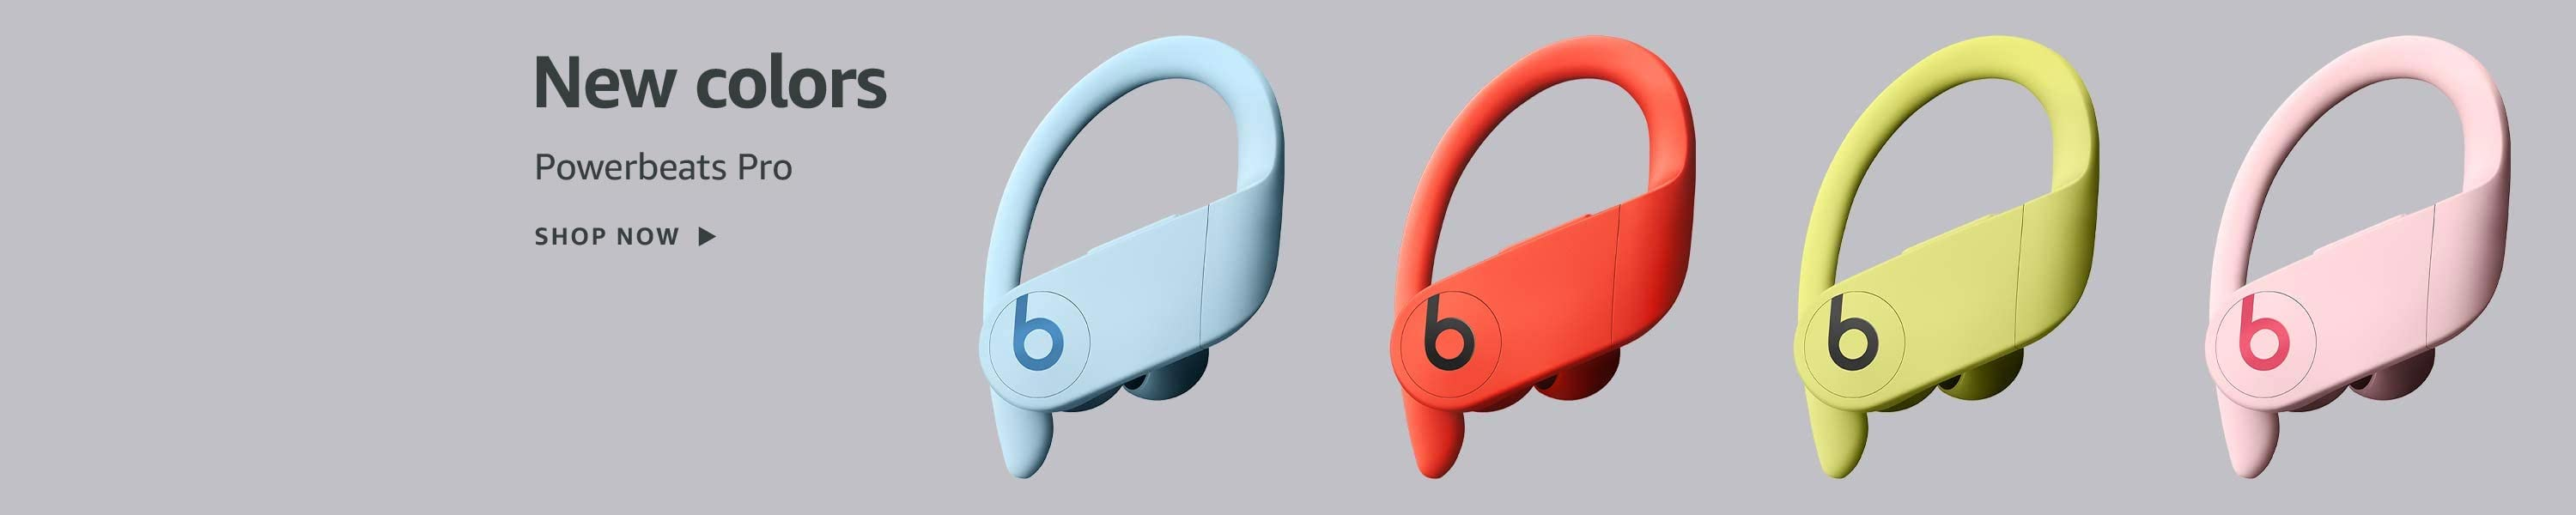 New colors Powerbeats Pro